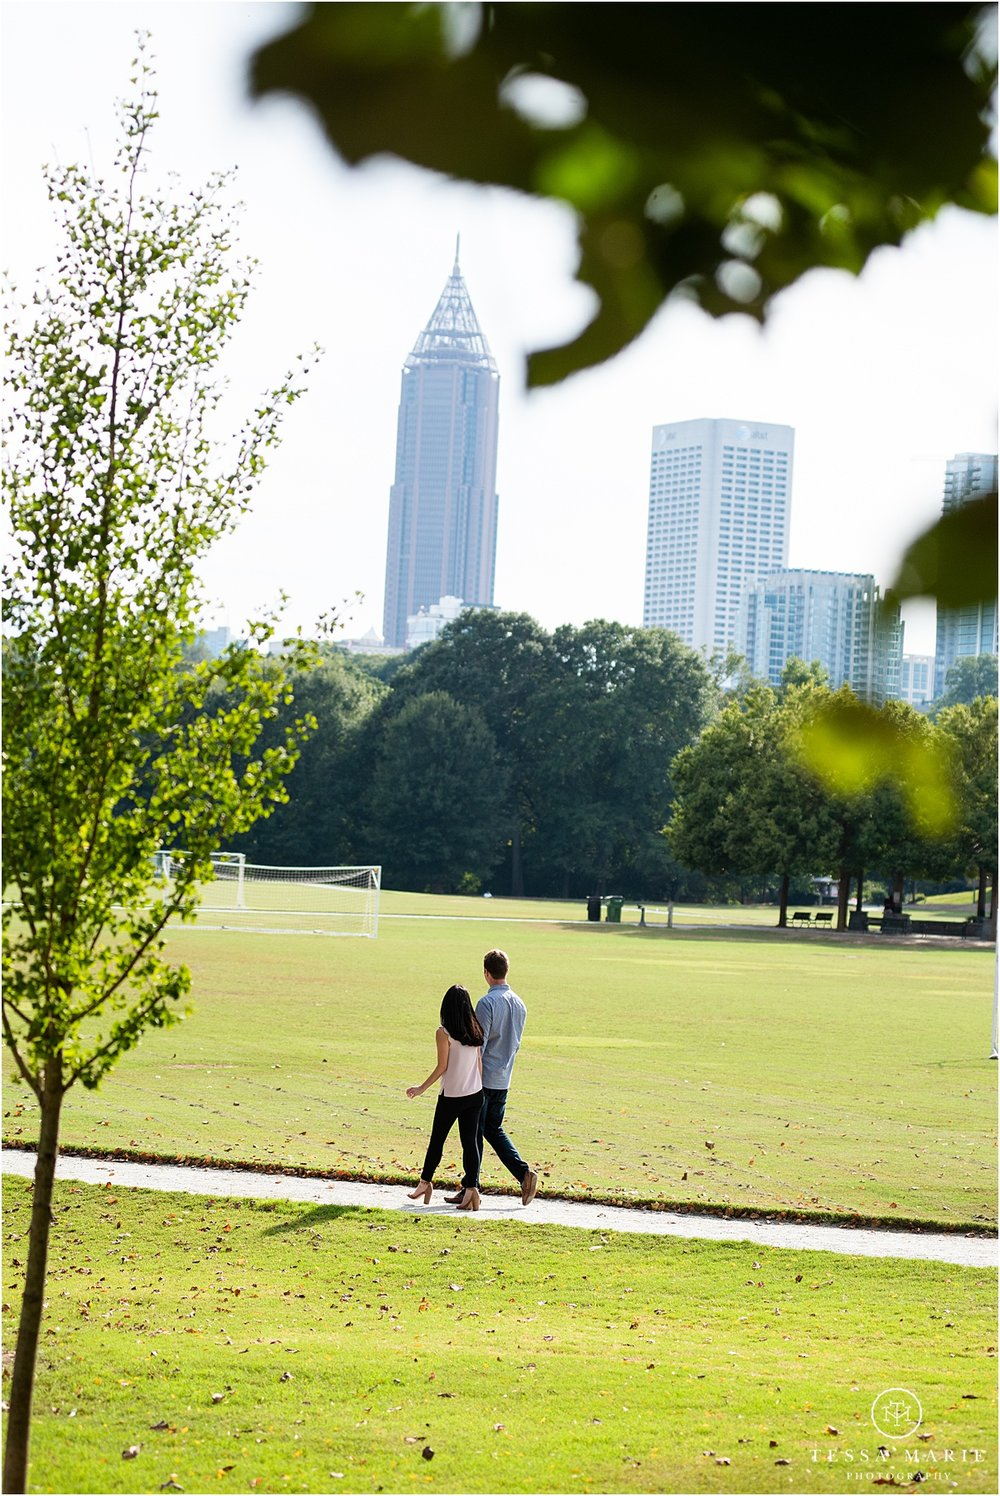 Tessa_marie_photography_wedding_photographer_engagement_pictures_piedmont_park_0007.jpg